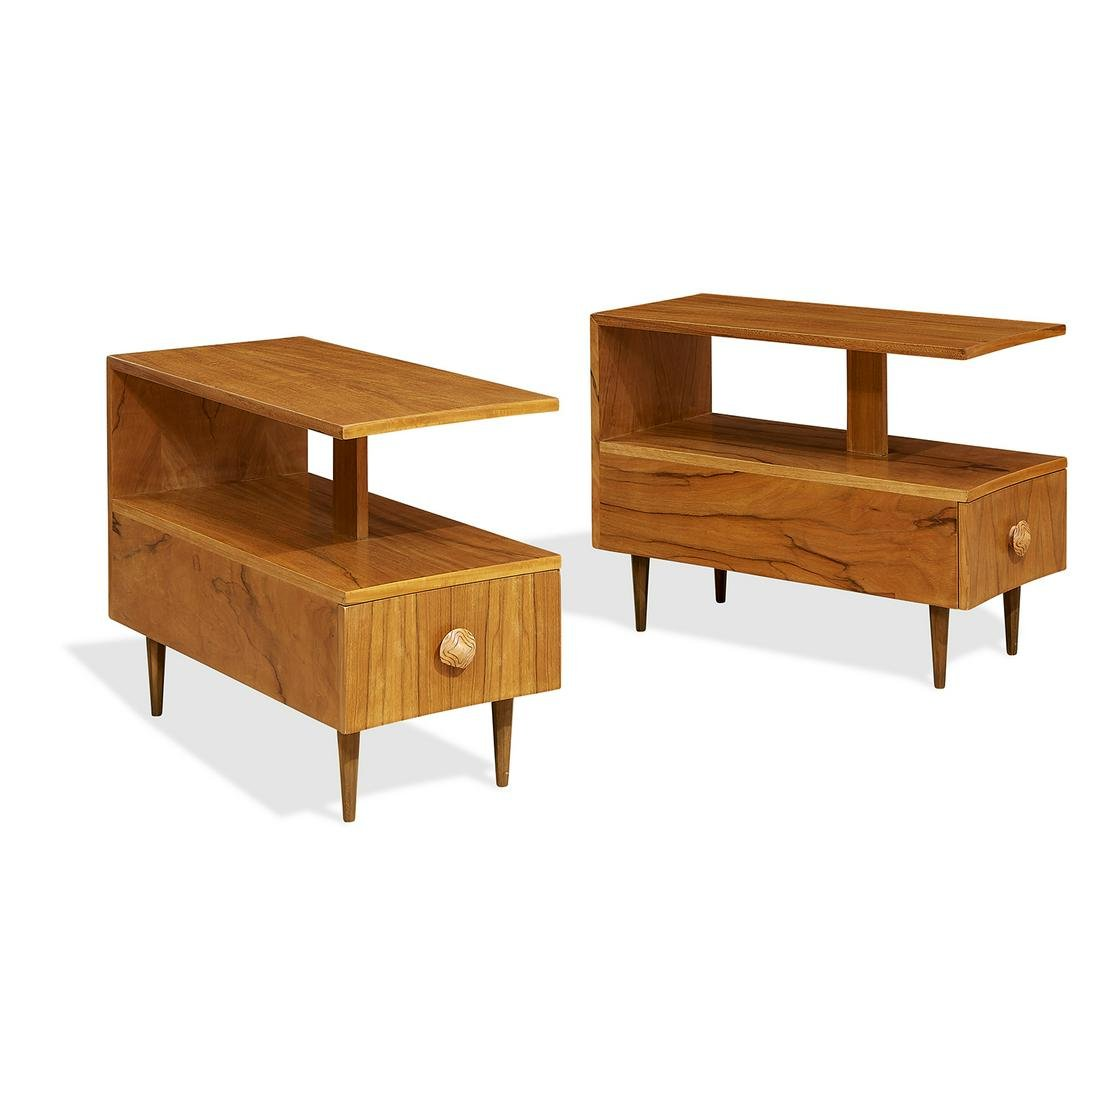 Gilbert Rohde for Herman Miller end tables, pair